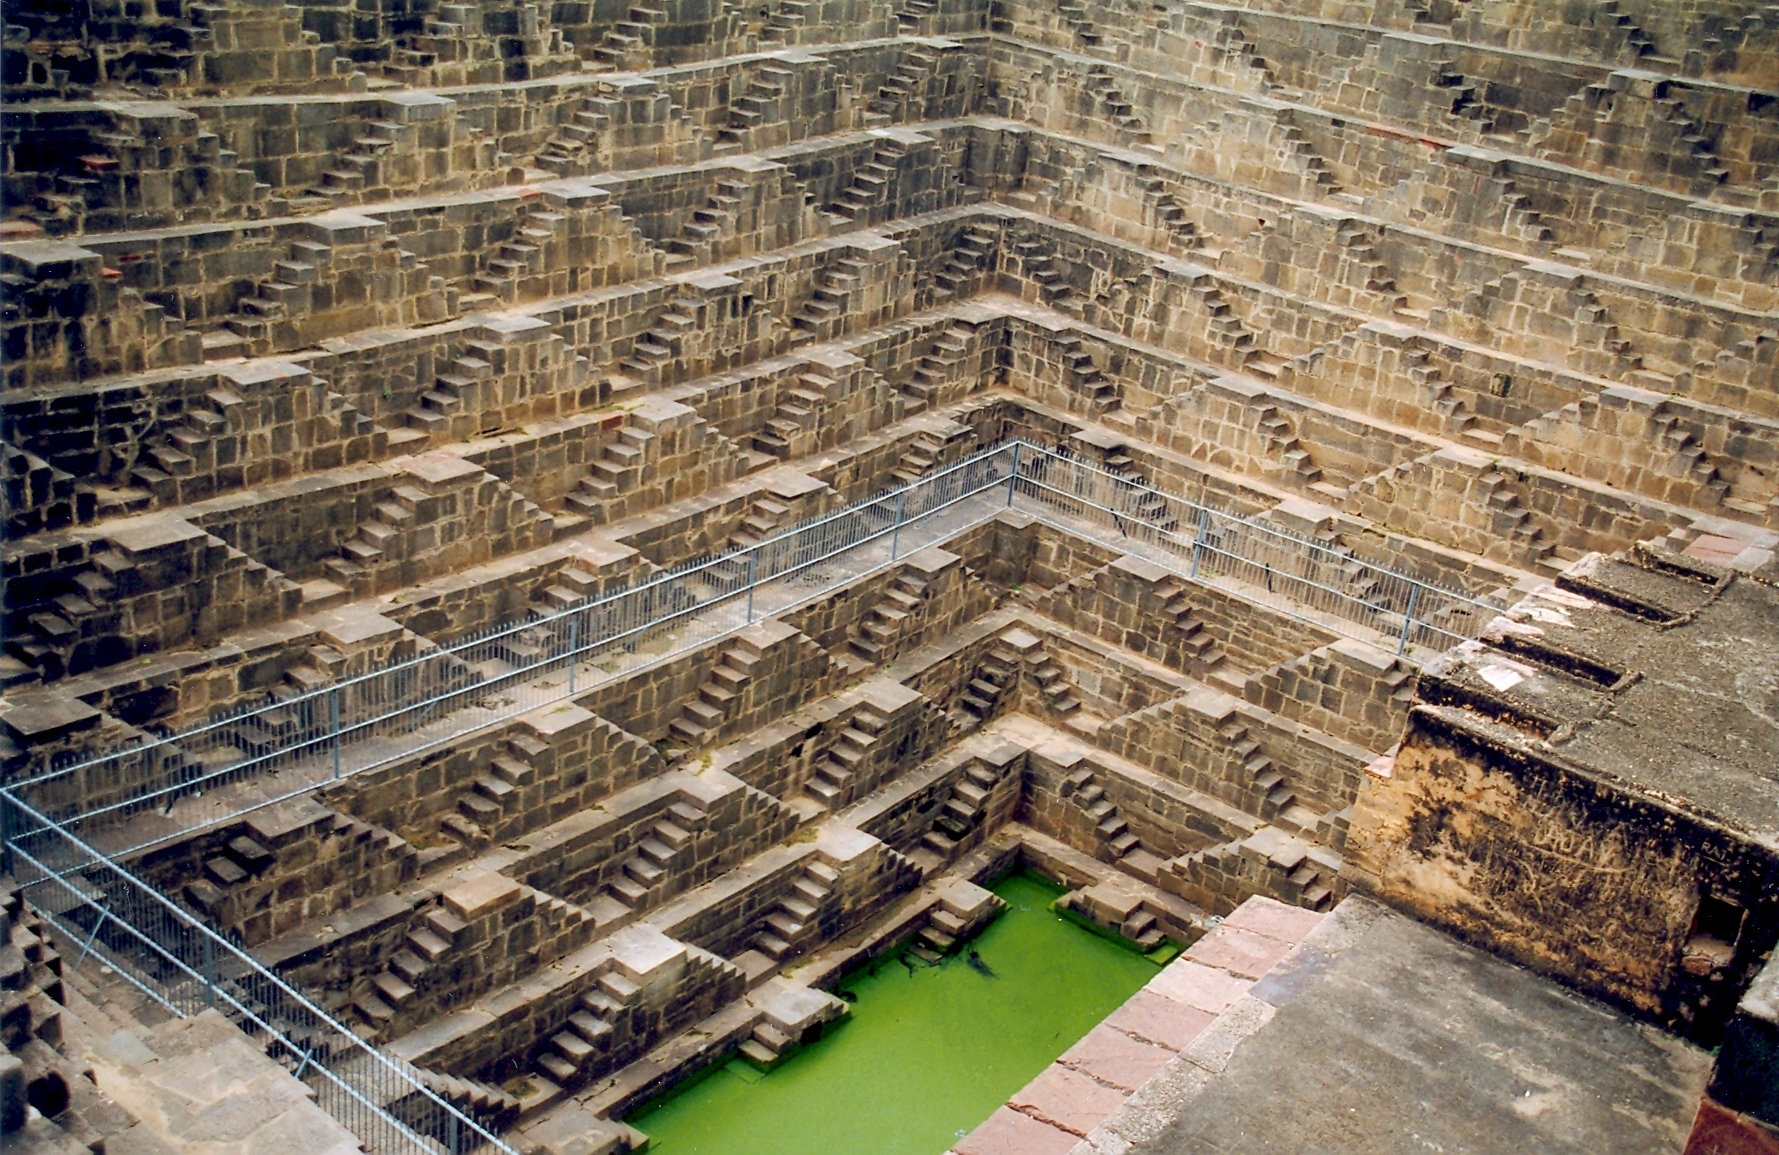 Chand bori Rajasthan places to visit in India